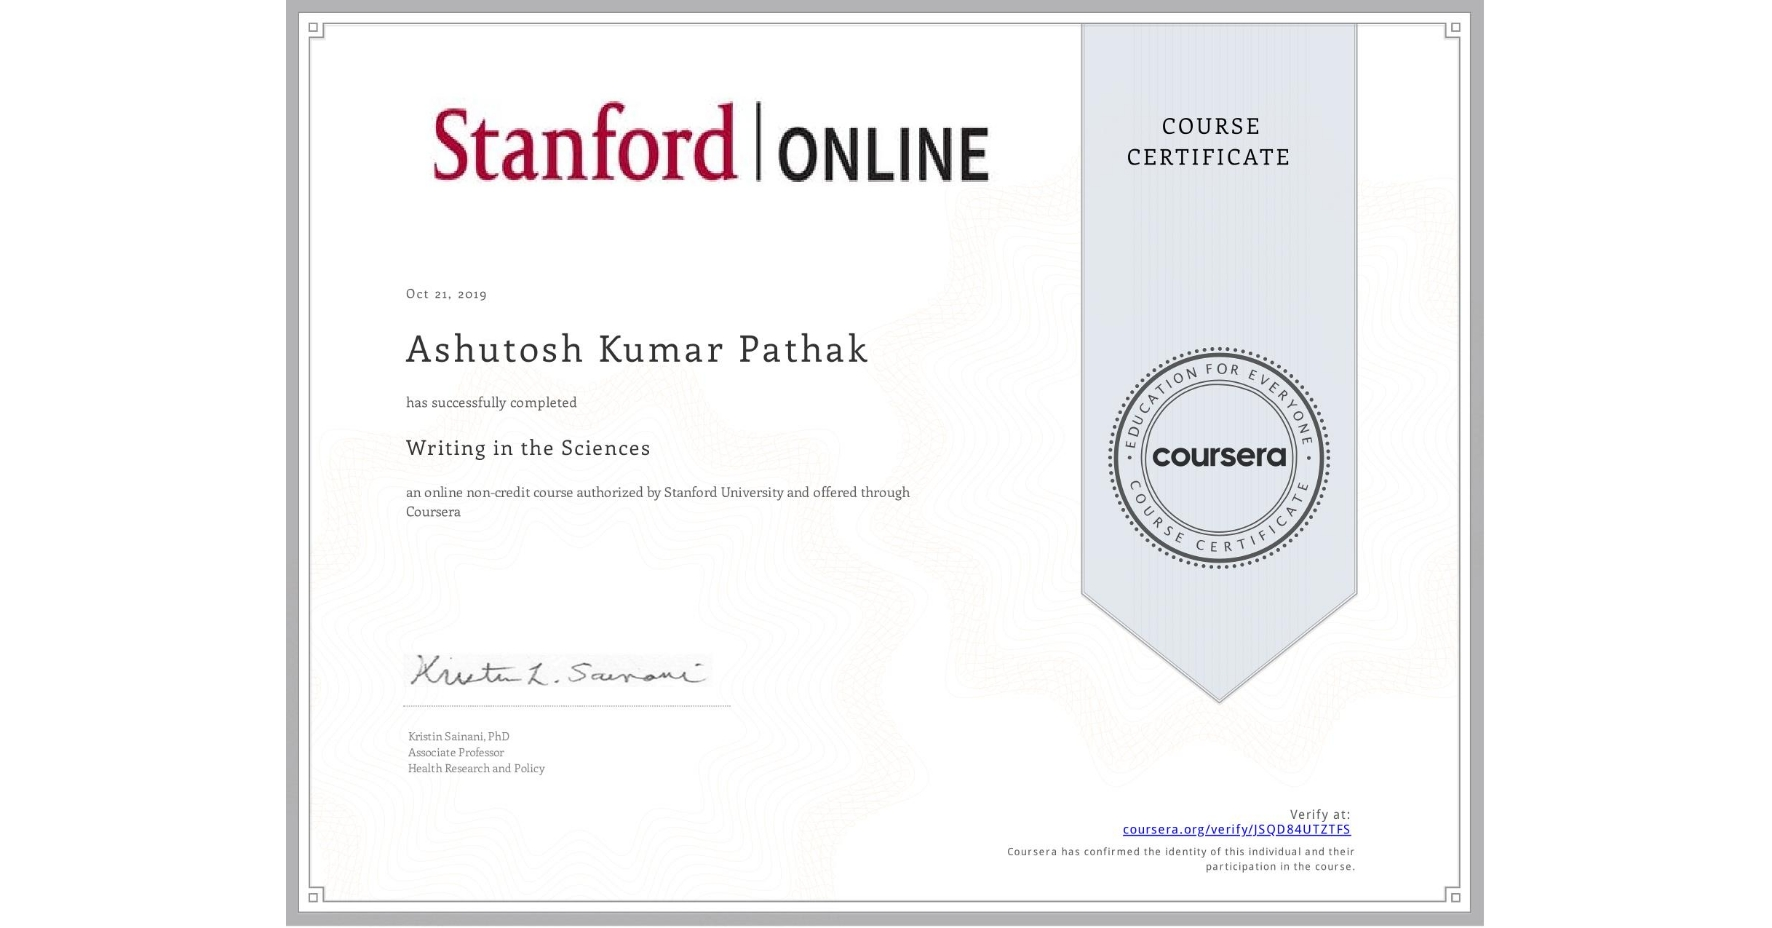 View certificate for Ashutosh Kumar Pathak, Writing in the Sciences, an online non-credit course authorized by Stanford University and offered through Coursera